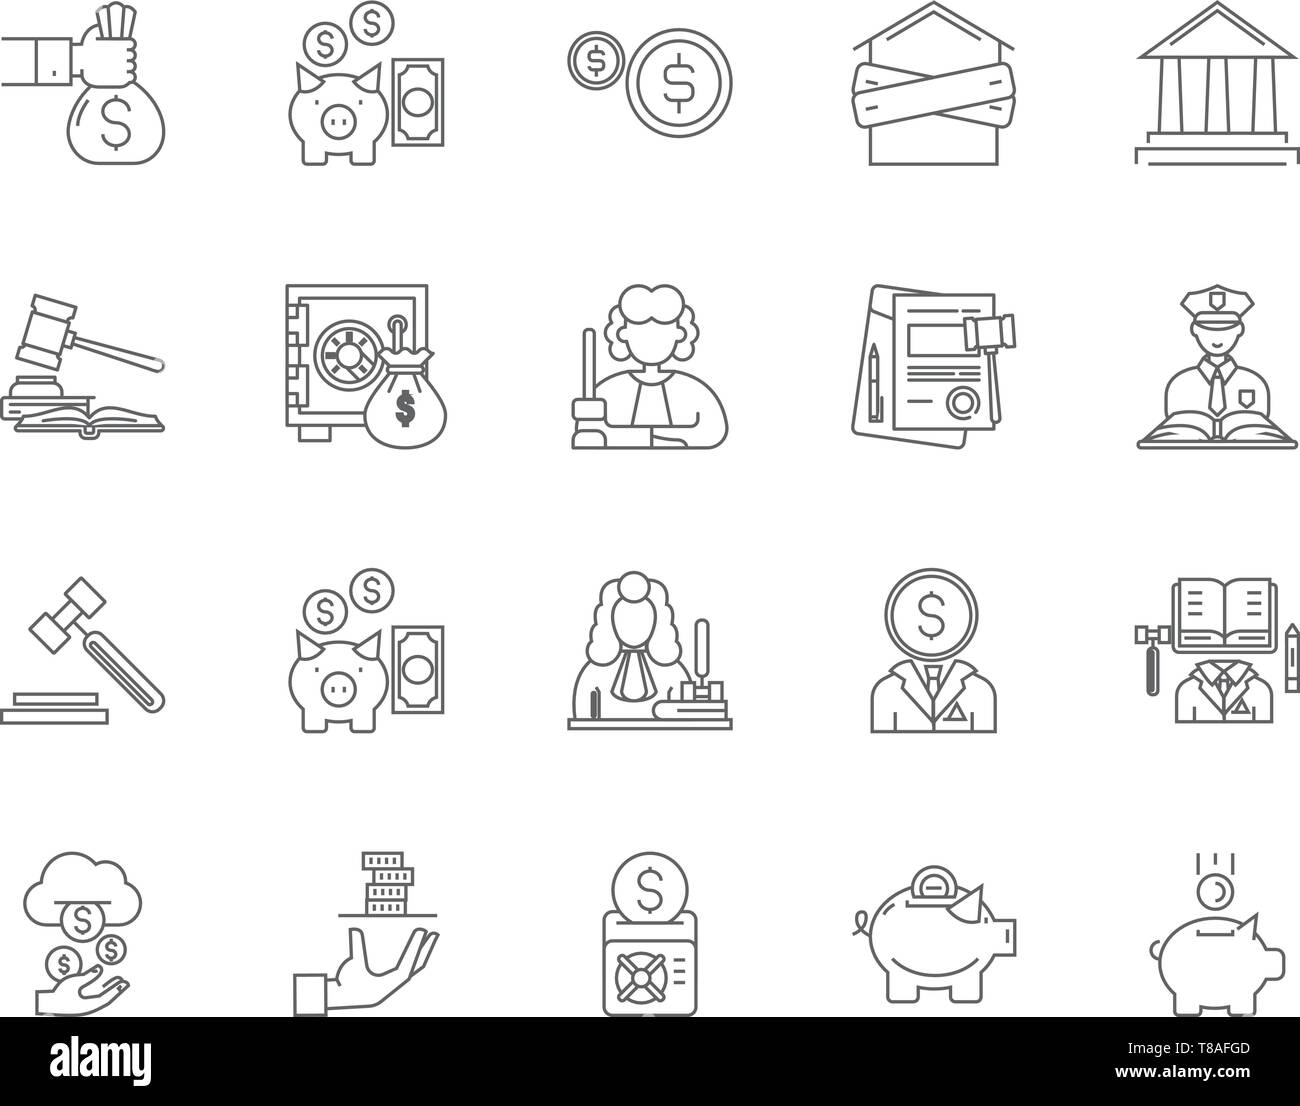 Debt collector line icons, signs, vector set, outline illustration concept  - Stock Image